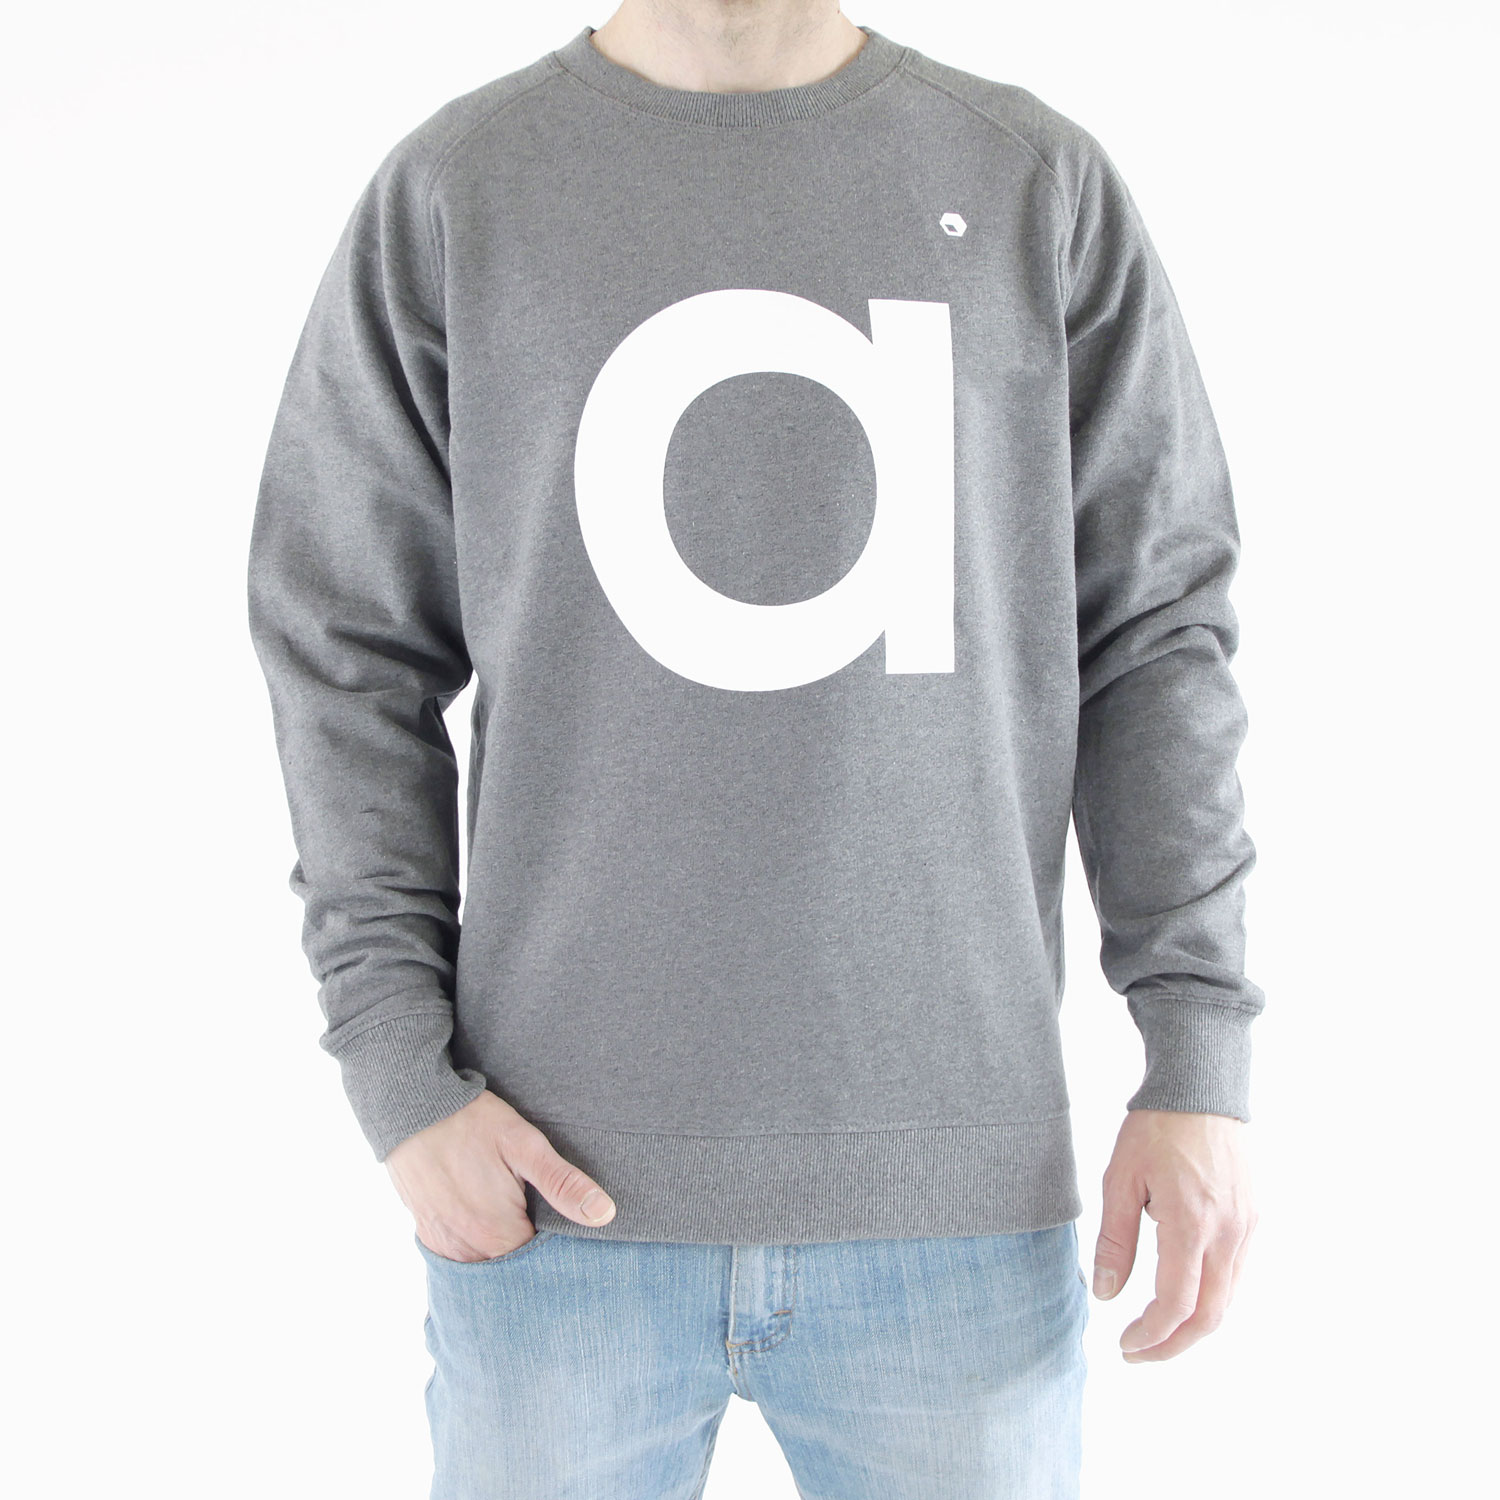 Flathold-apparel-sweat-a-grey